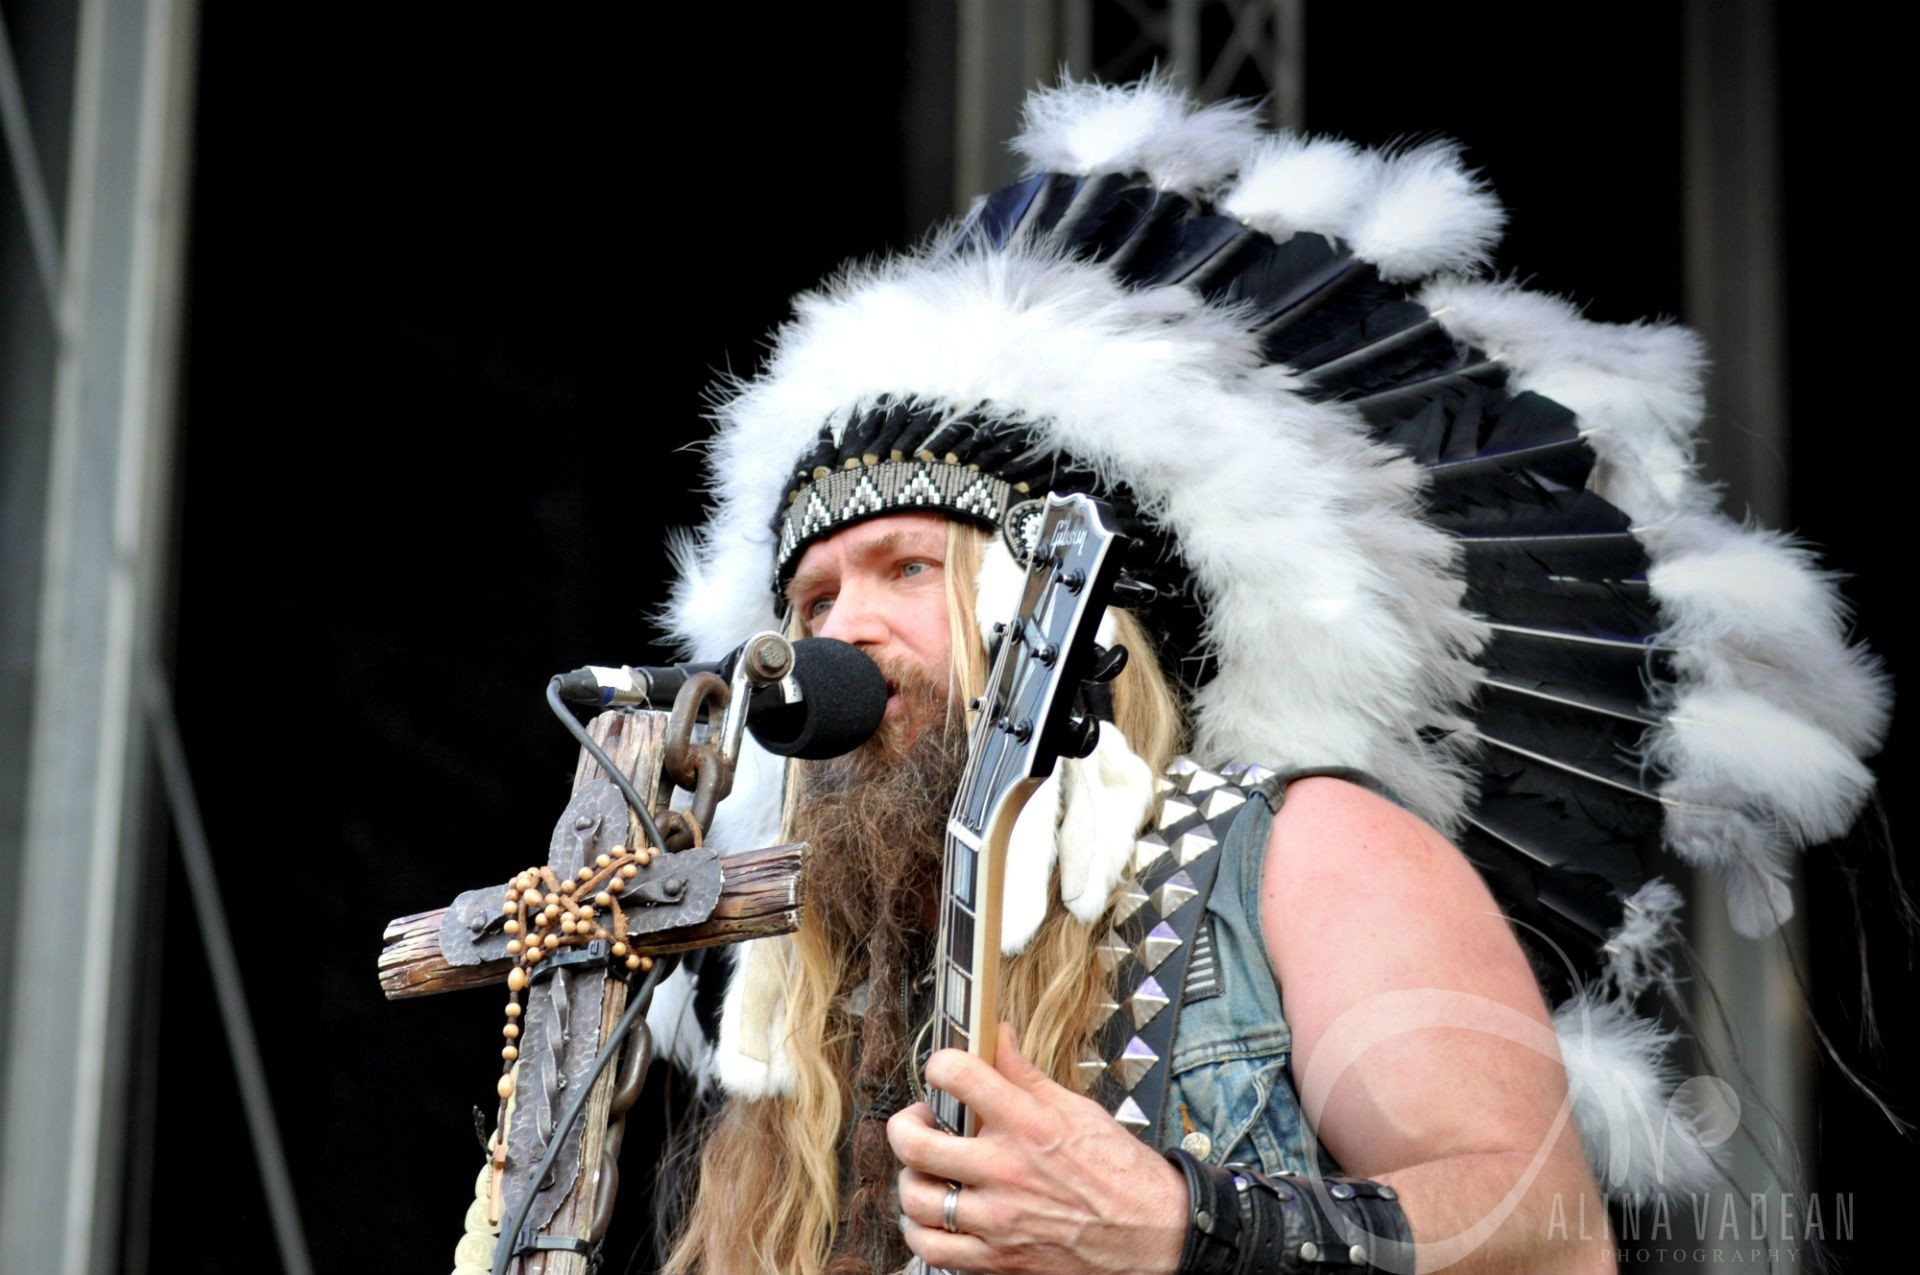 1920x1275 ... Best Zakk Wylde Twitter Wallpaper Free download best Latest 3D HD  desktop wallpapers background Wide Most